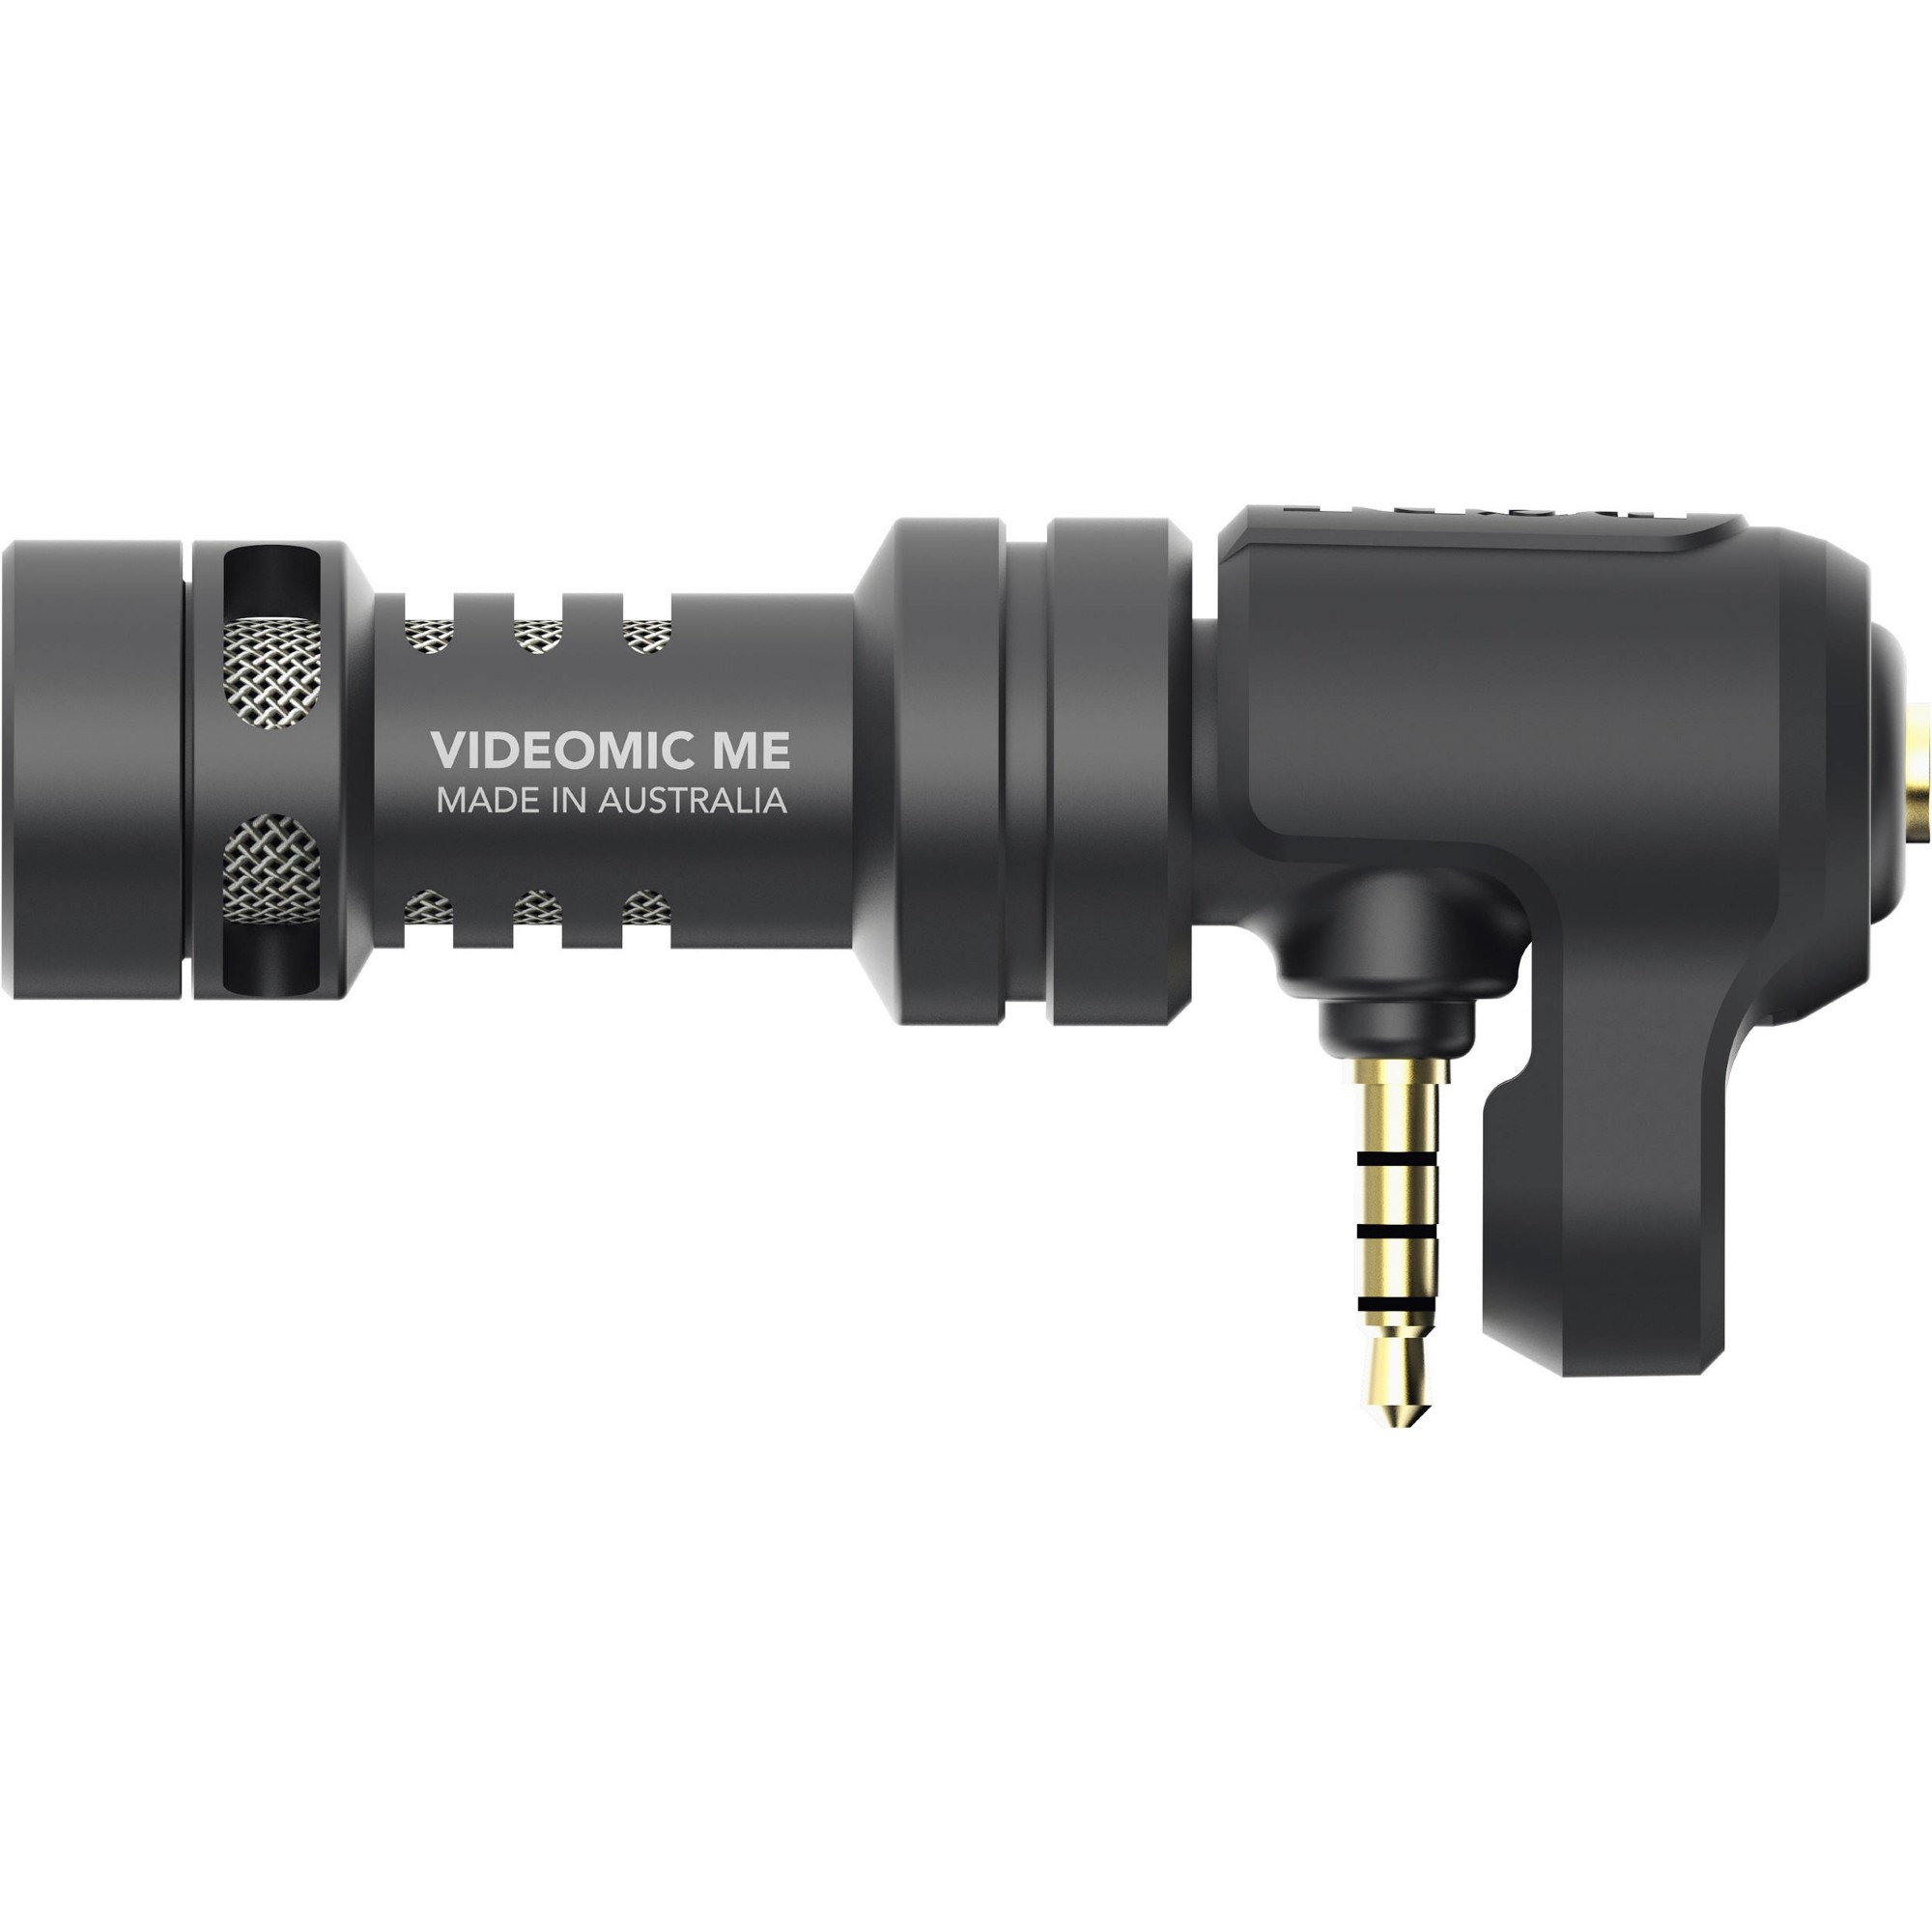 RODE 400410005 VIDEOMIC ME SMARTPHONE MICROPHONE WIRED BLACK